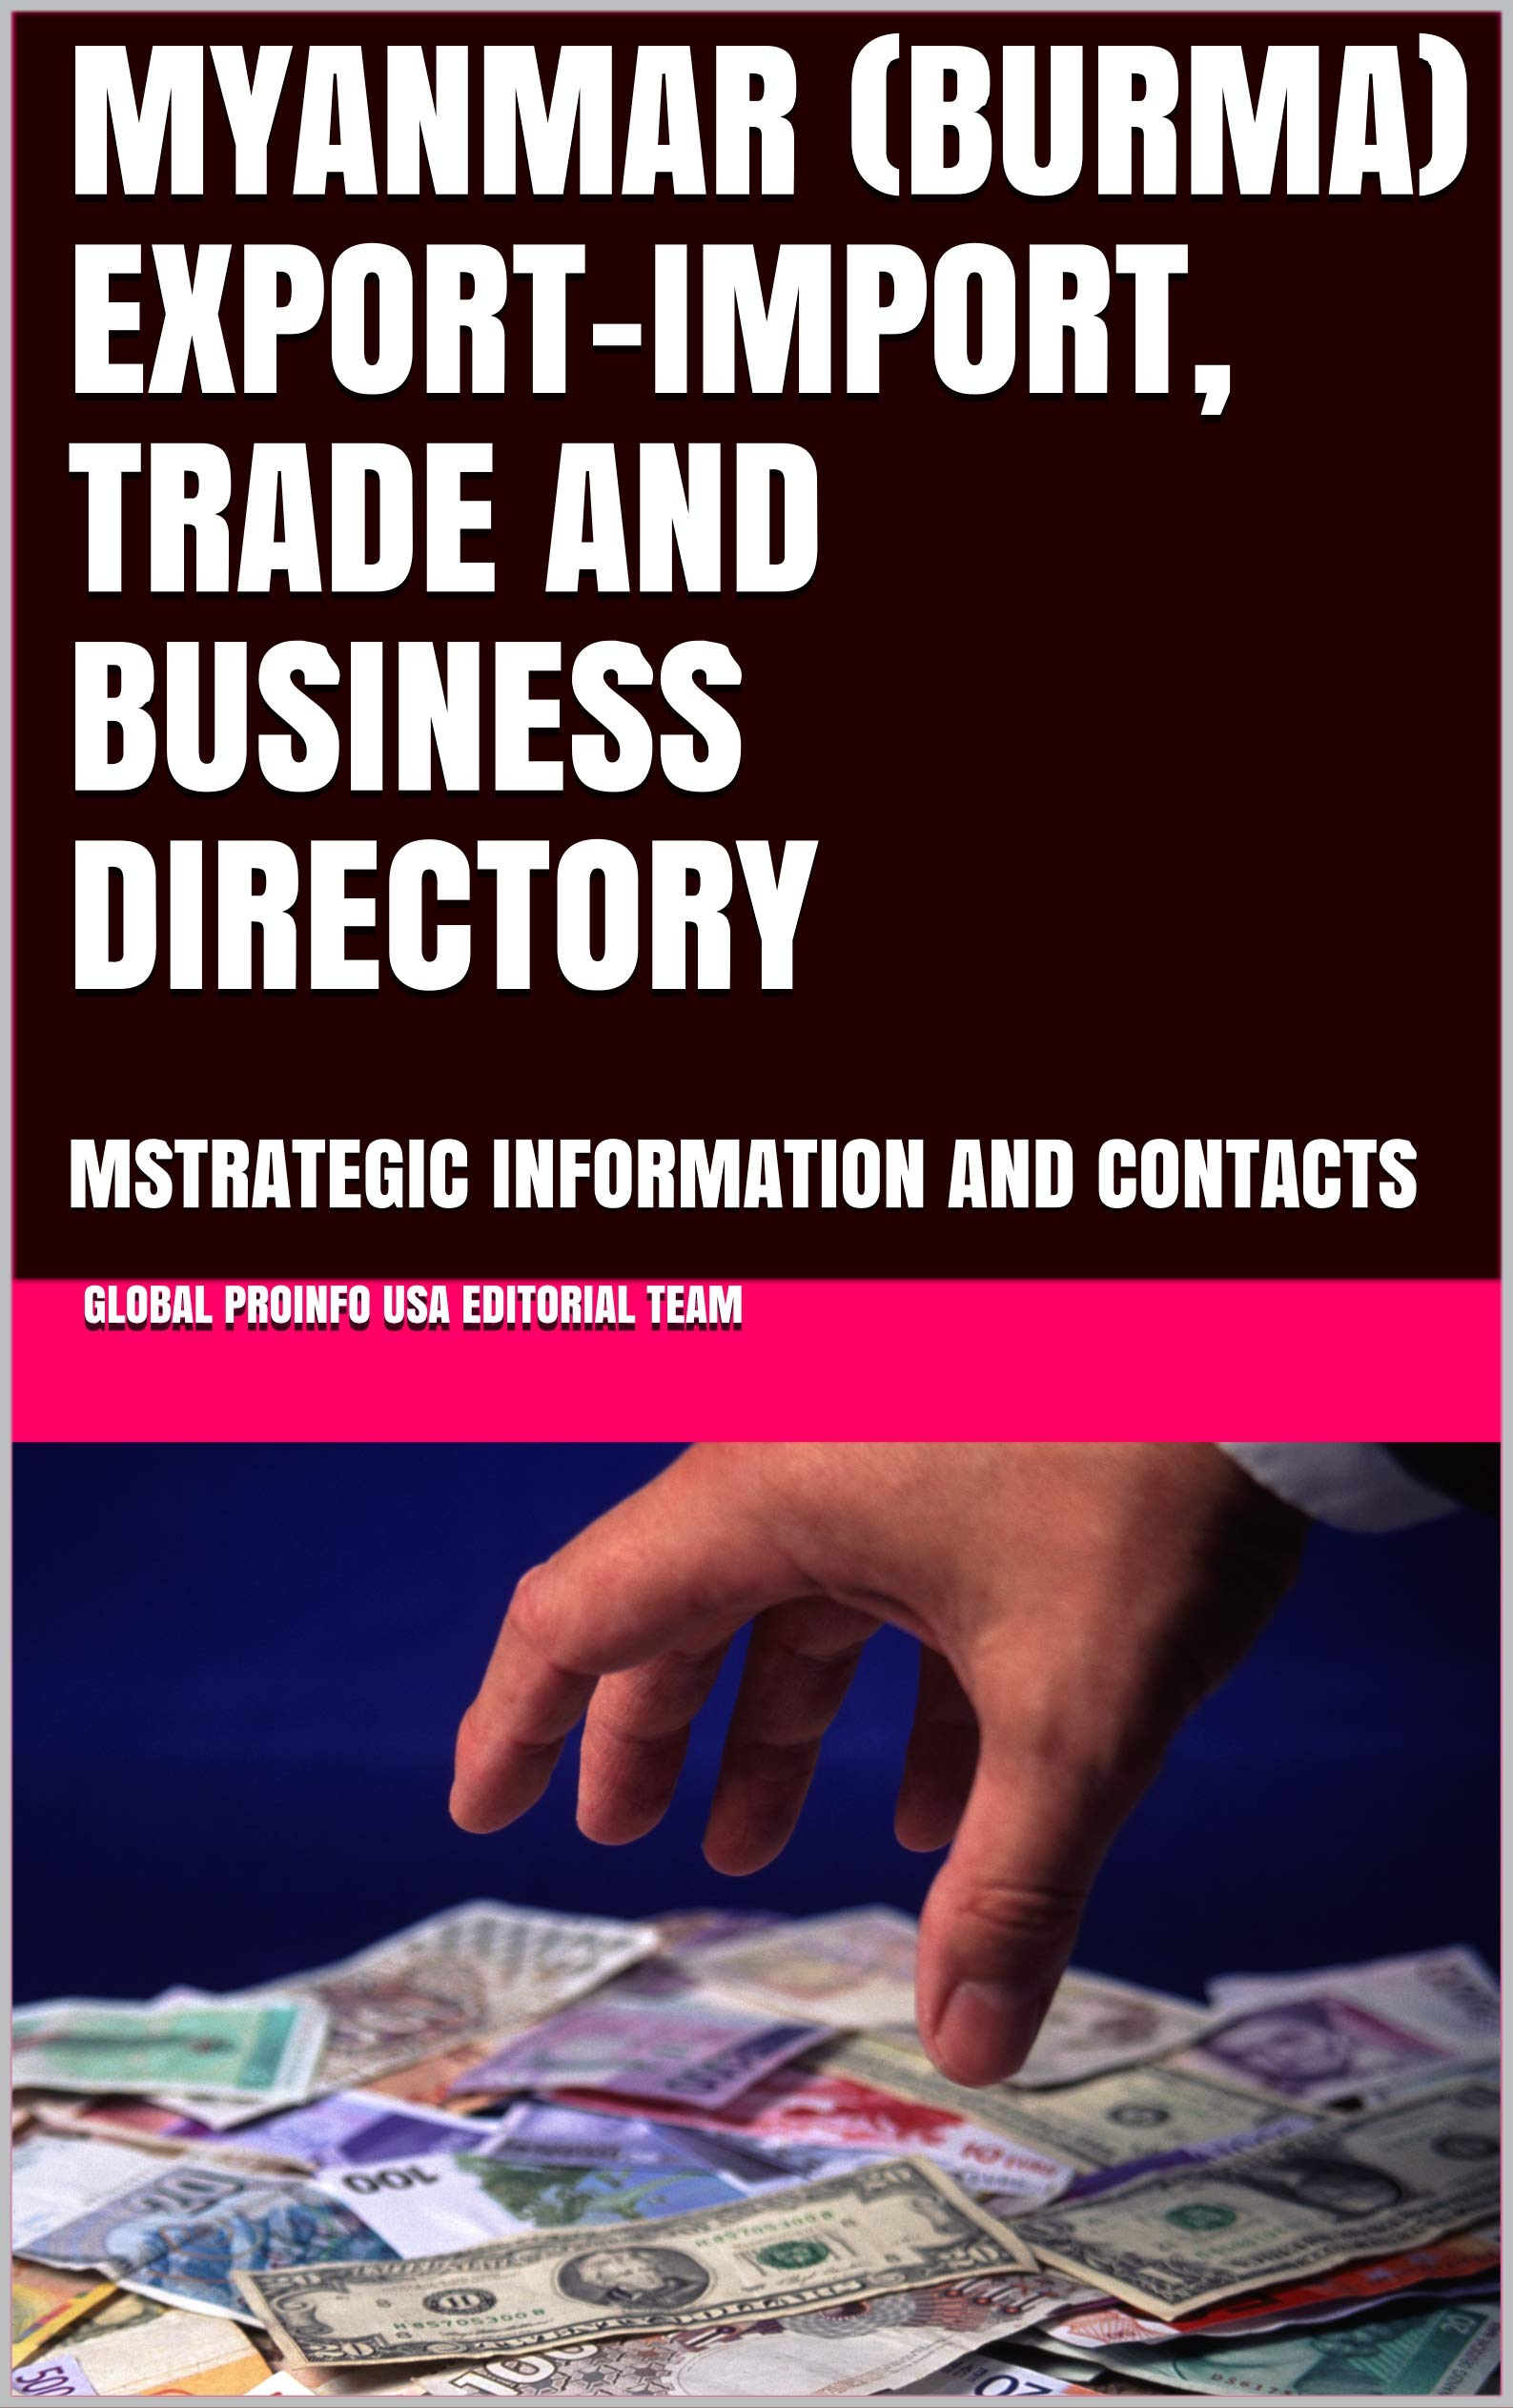 MYANMAR (BURMA) EXPORT-IMPORT, TRADE AND BUSINESS DIRECTORY: MSTRATEGIC INFORMATION AND CONTACTS (World Export-Import Opportunities Library Book 100)